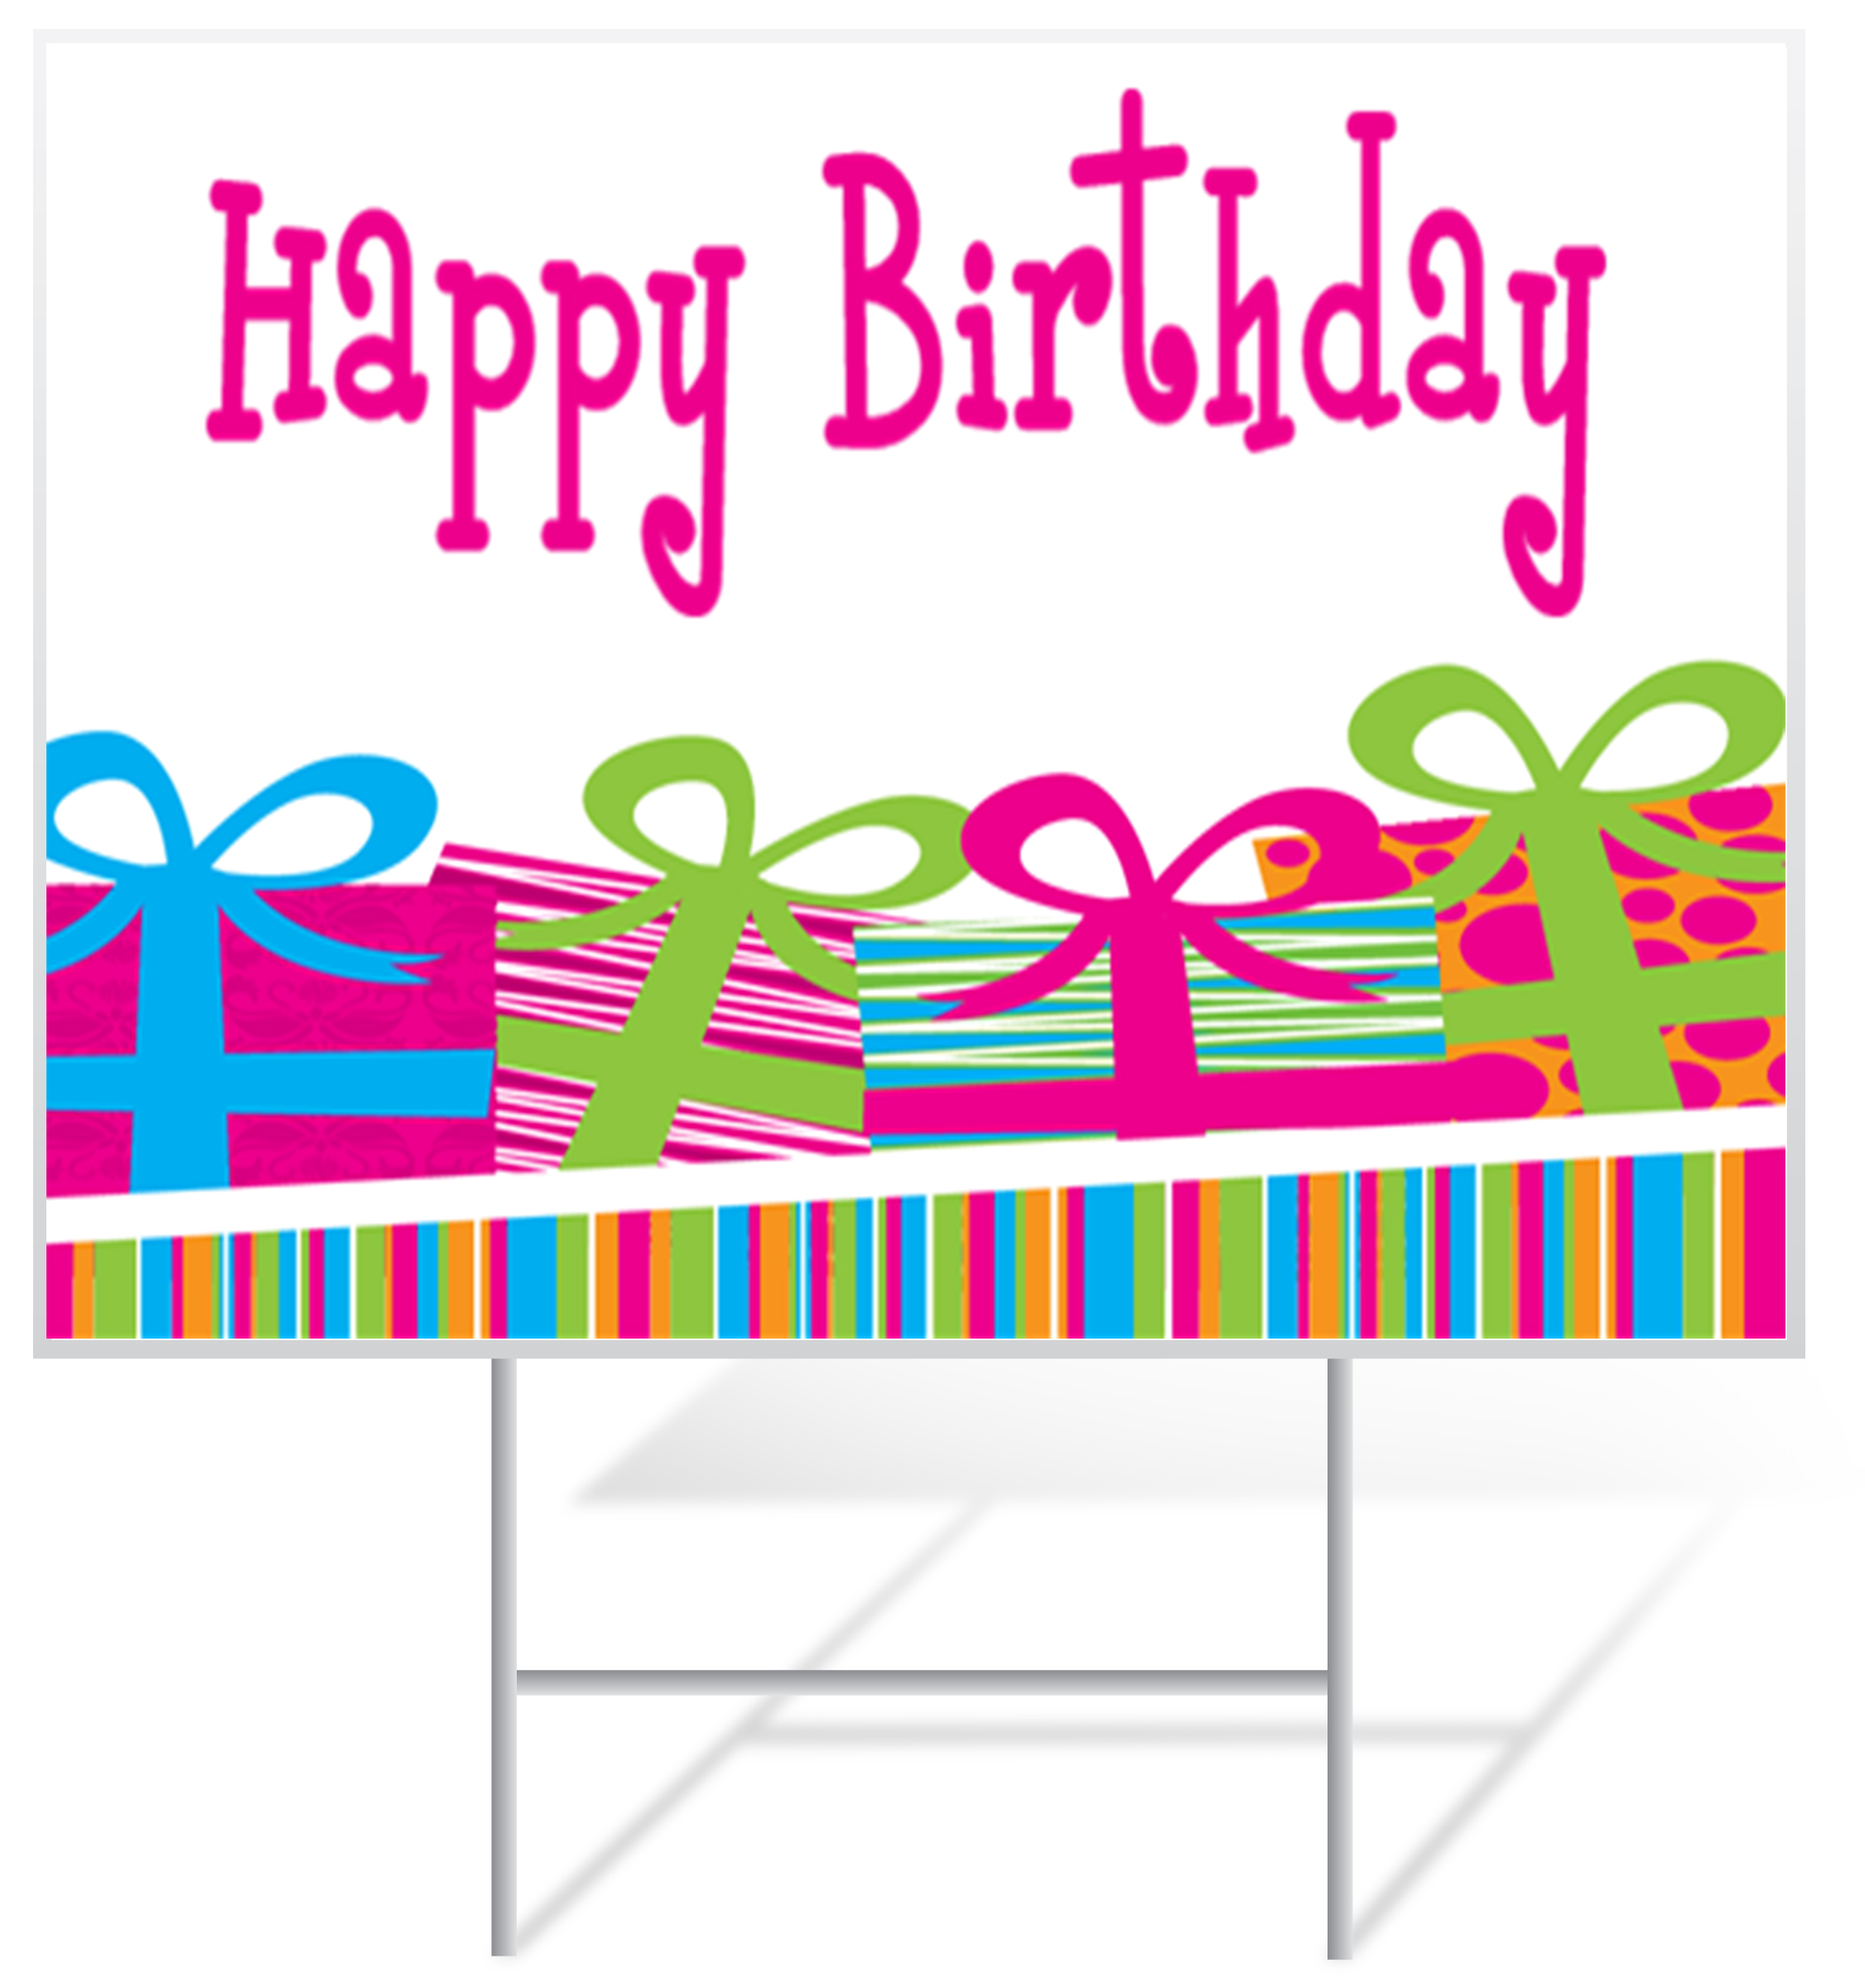 Birthday Lawn Sign Example | LawnSigns.com